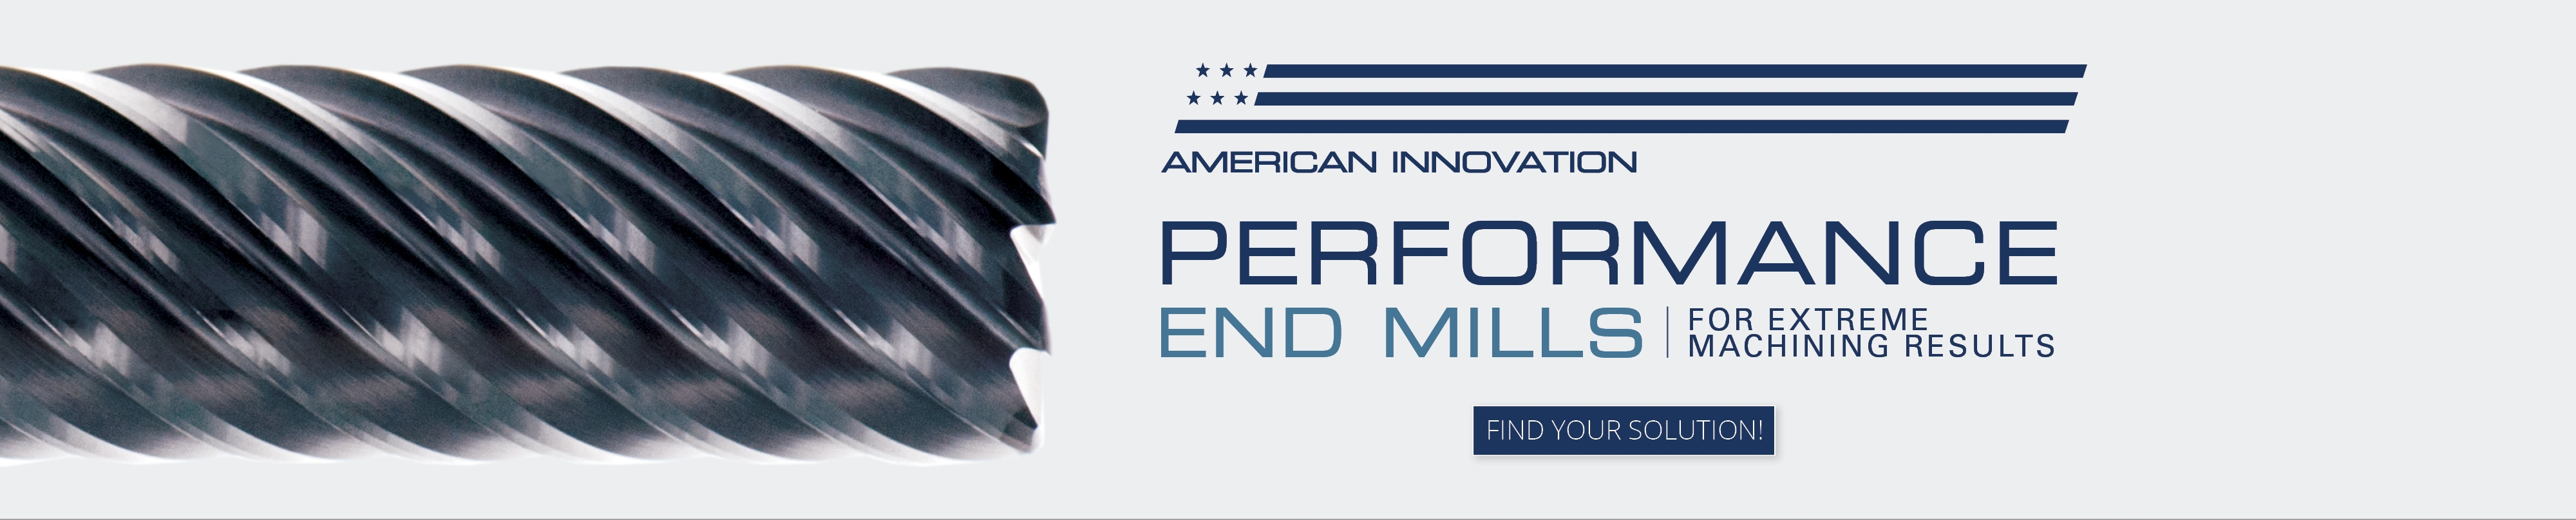 Performance End Mills Banner